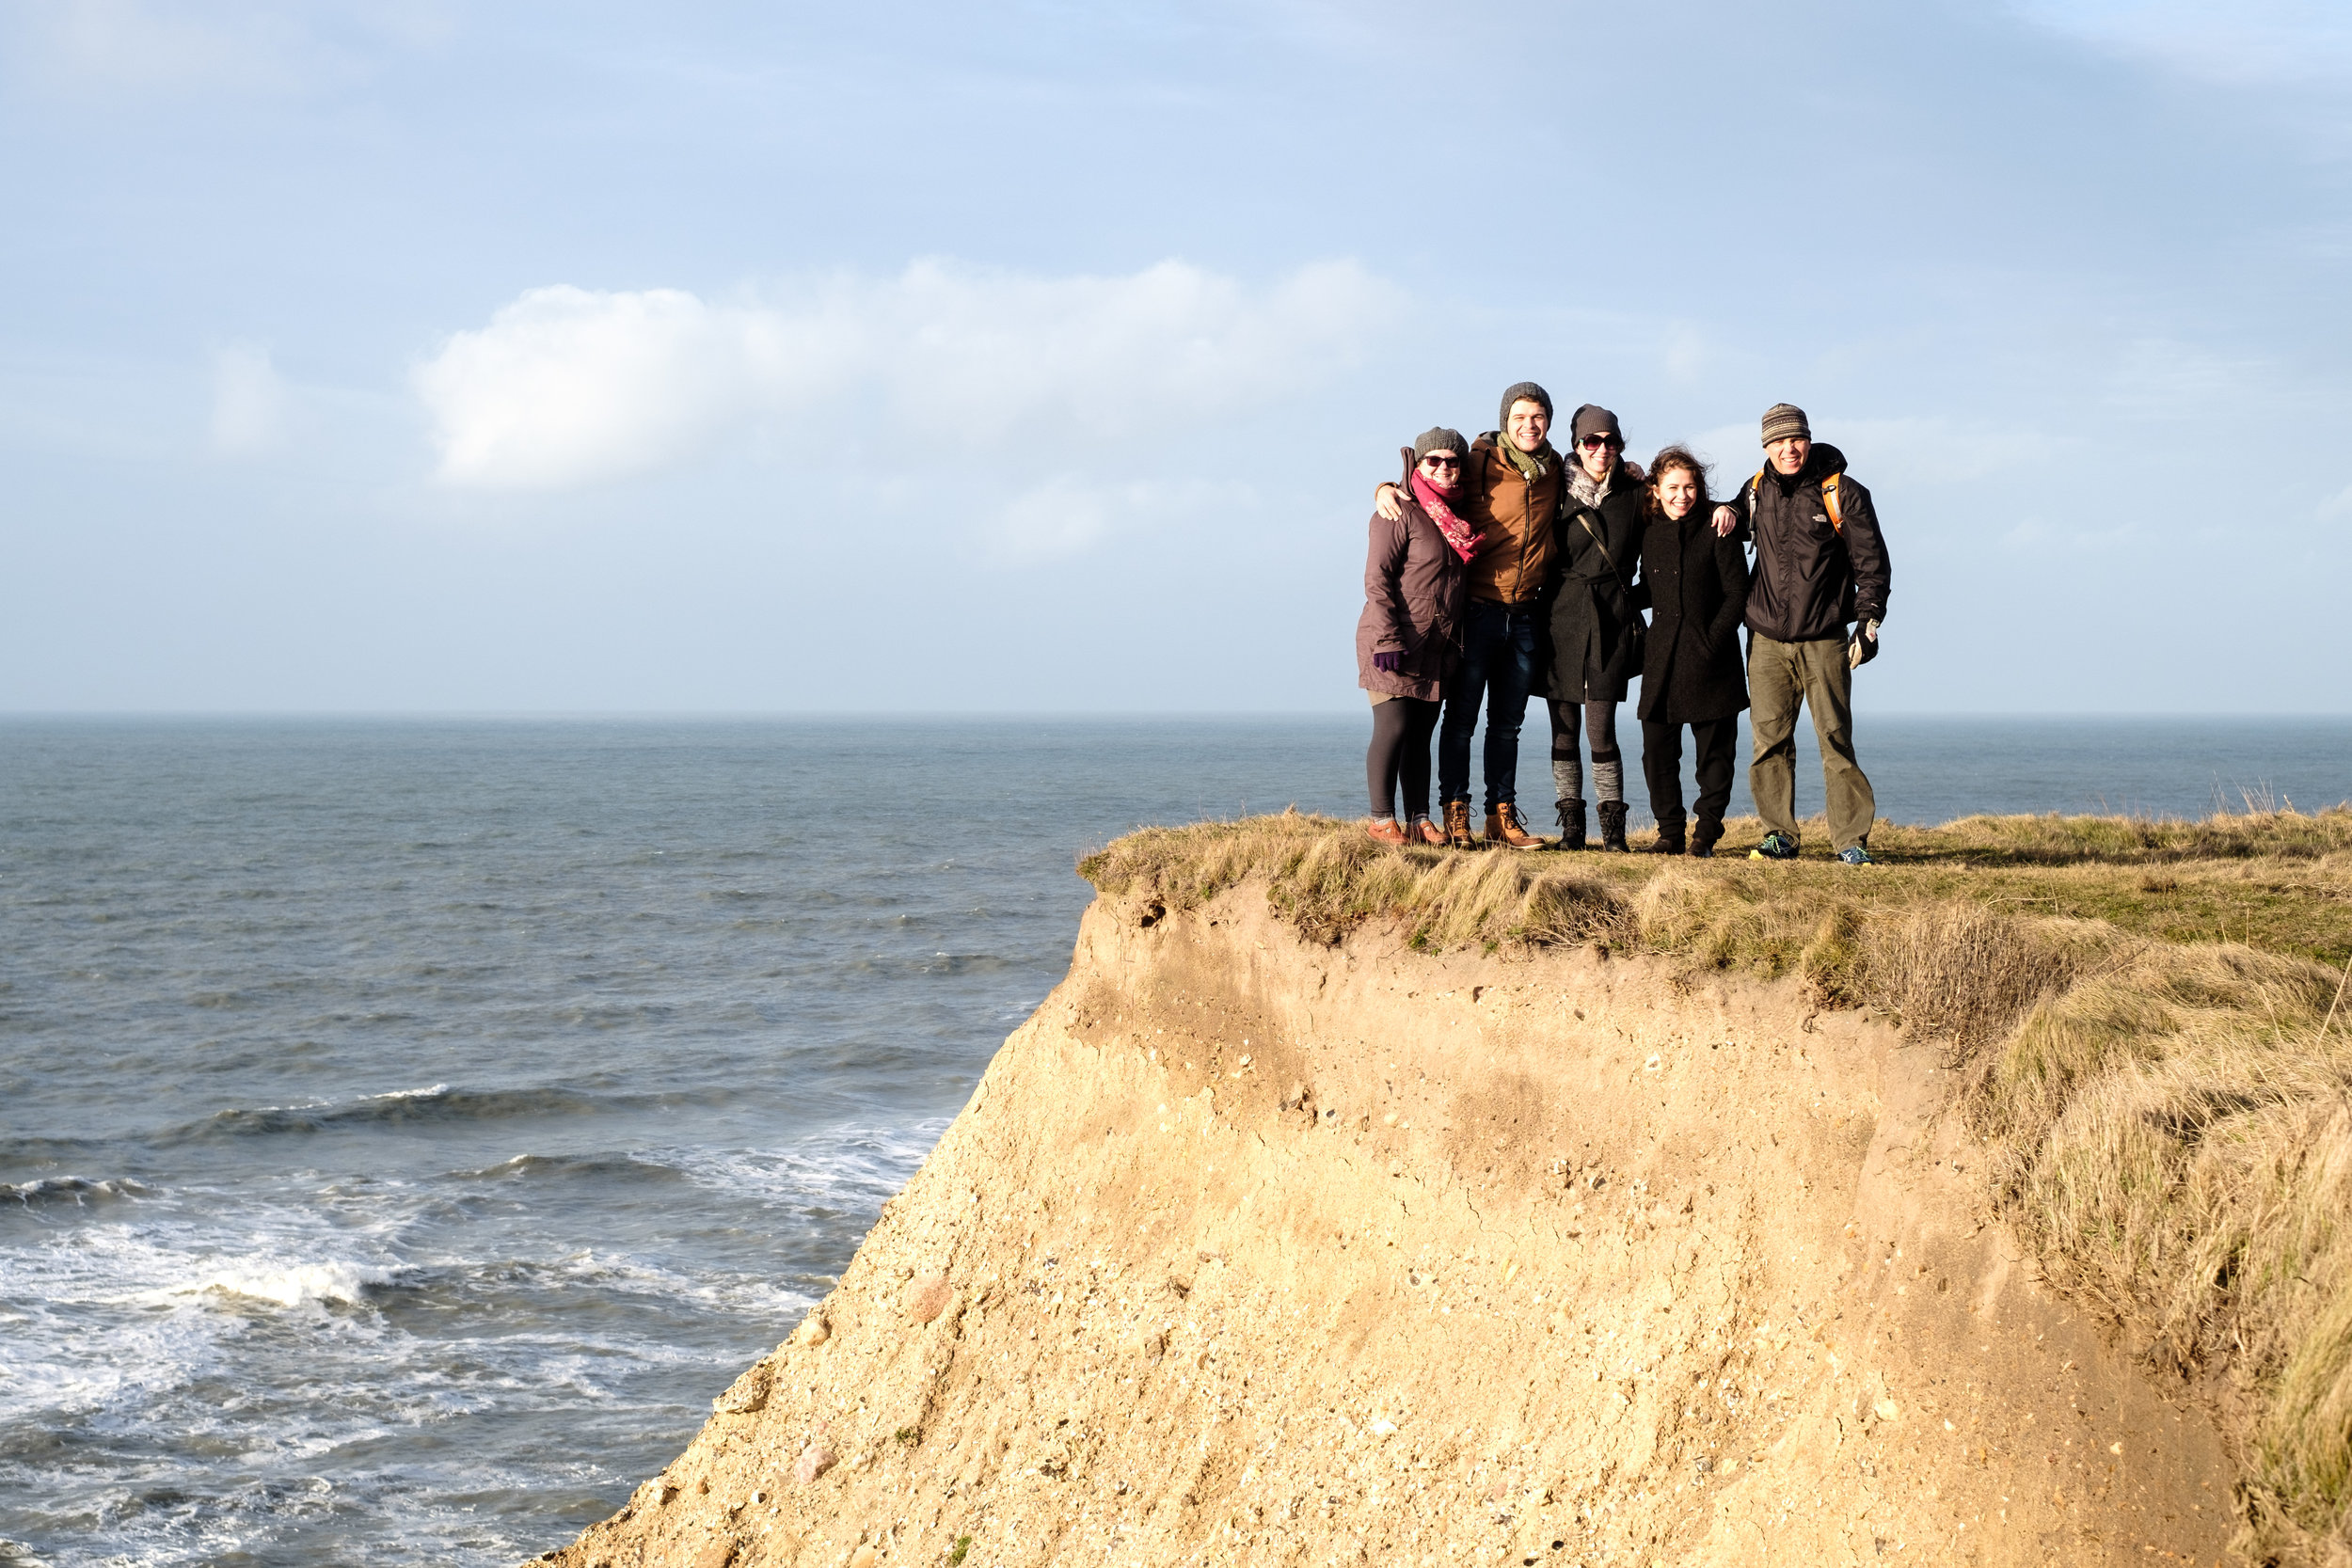 Set the self-timer. Hurry hurry back to the group. Mind the edge. Best company in the world!